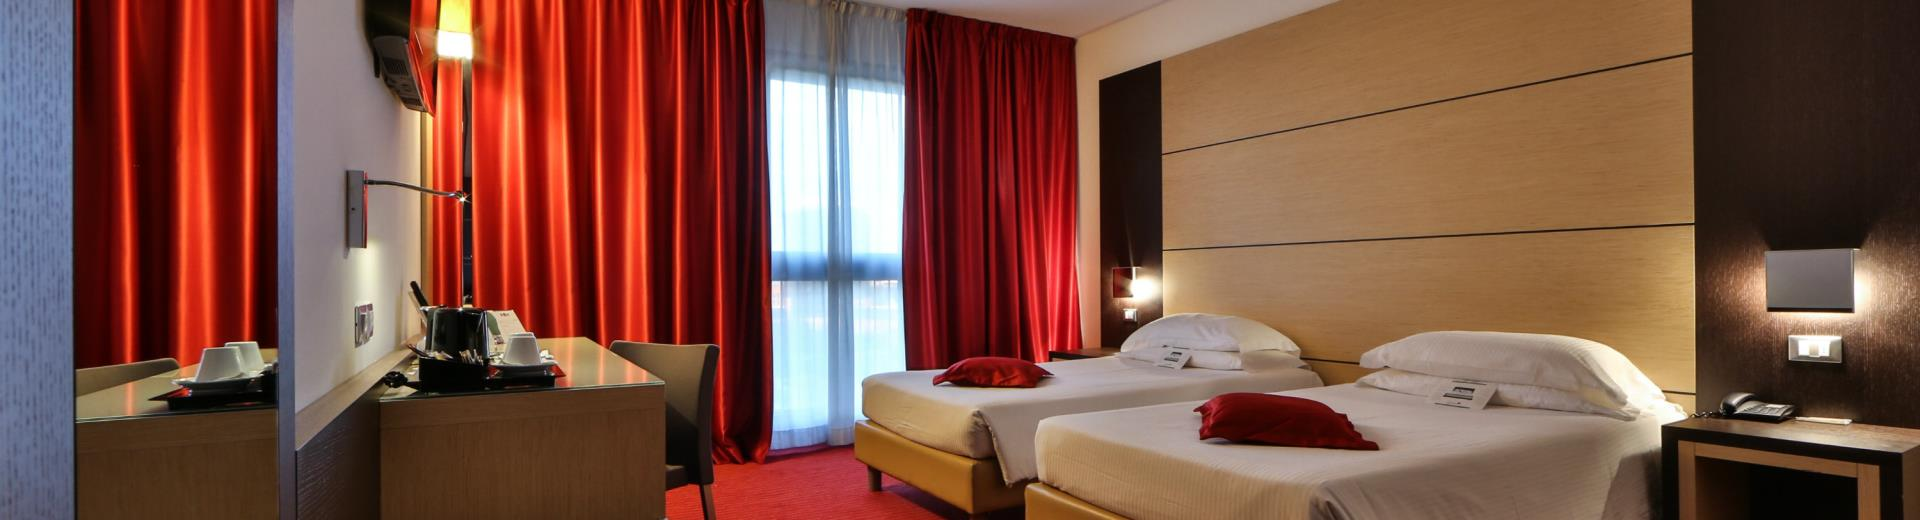 Day Use Hotel Room In Padua Best Western Plus Hotel Galileo 4 Star